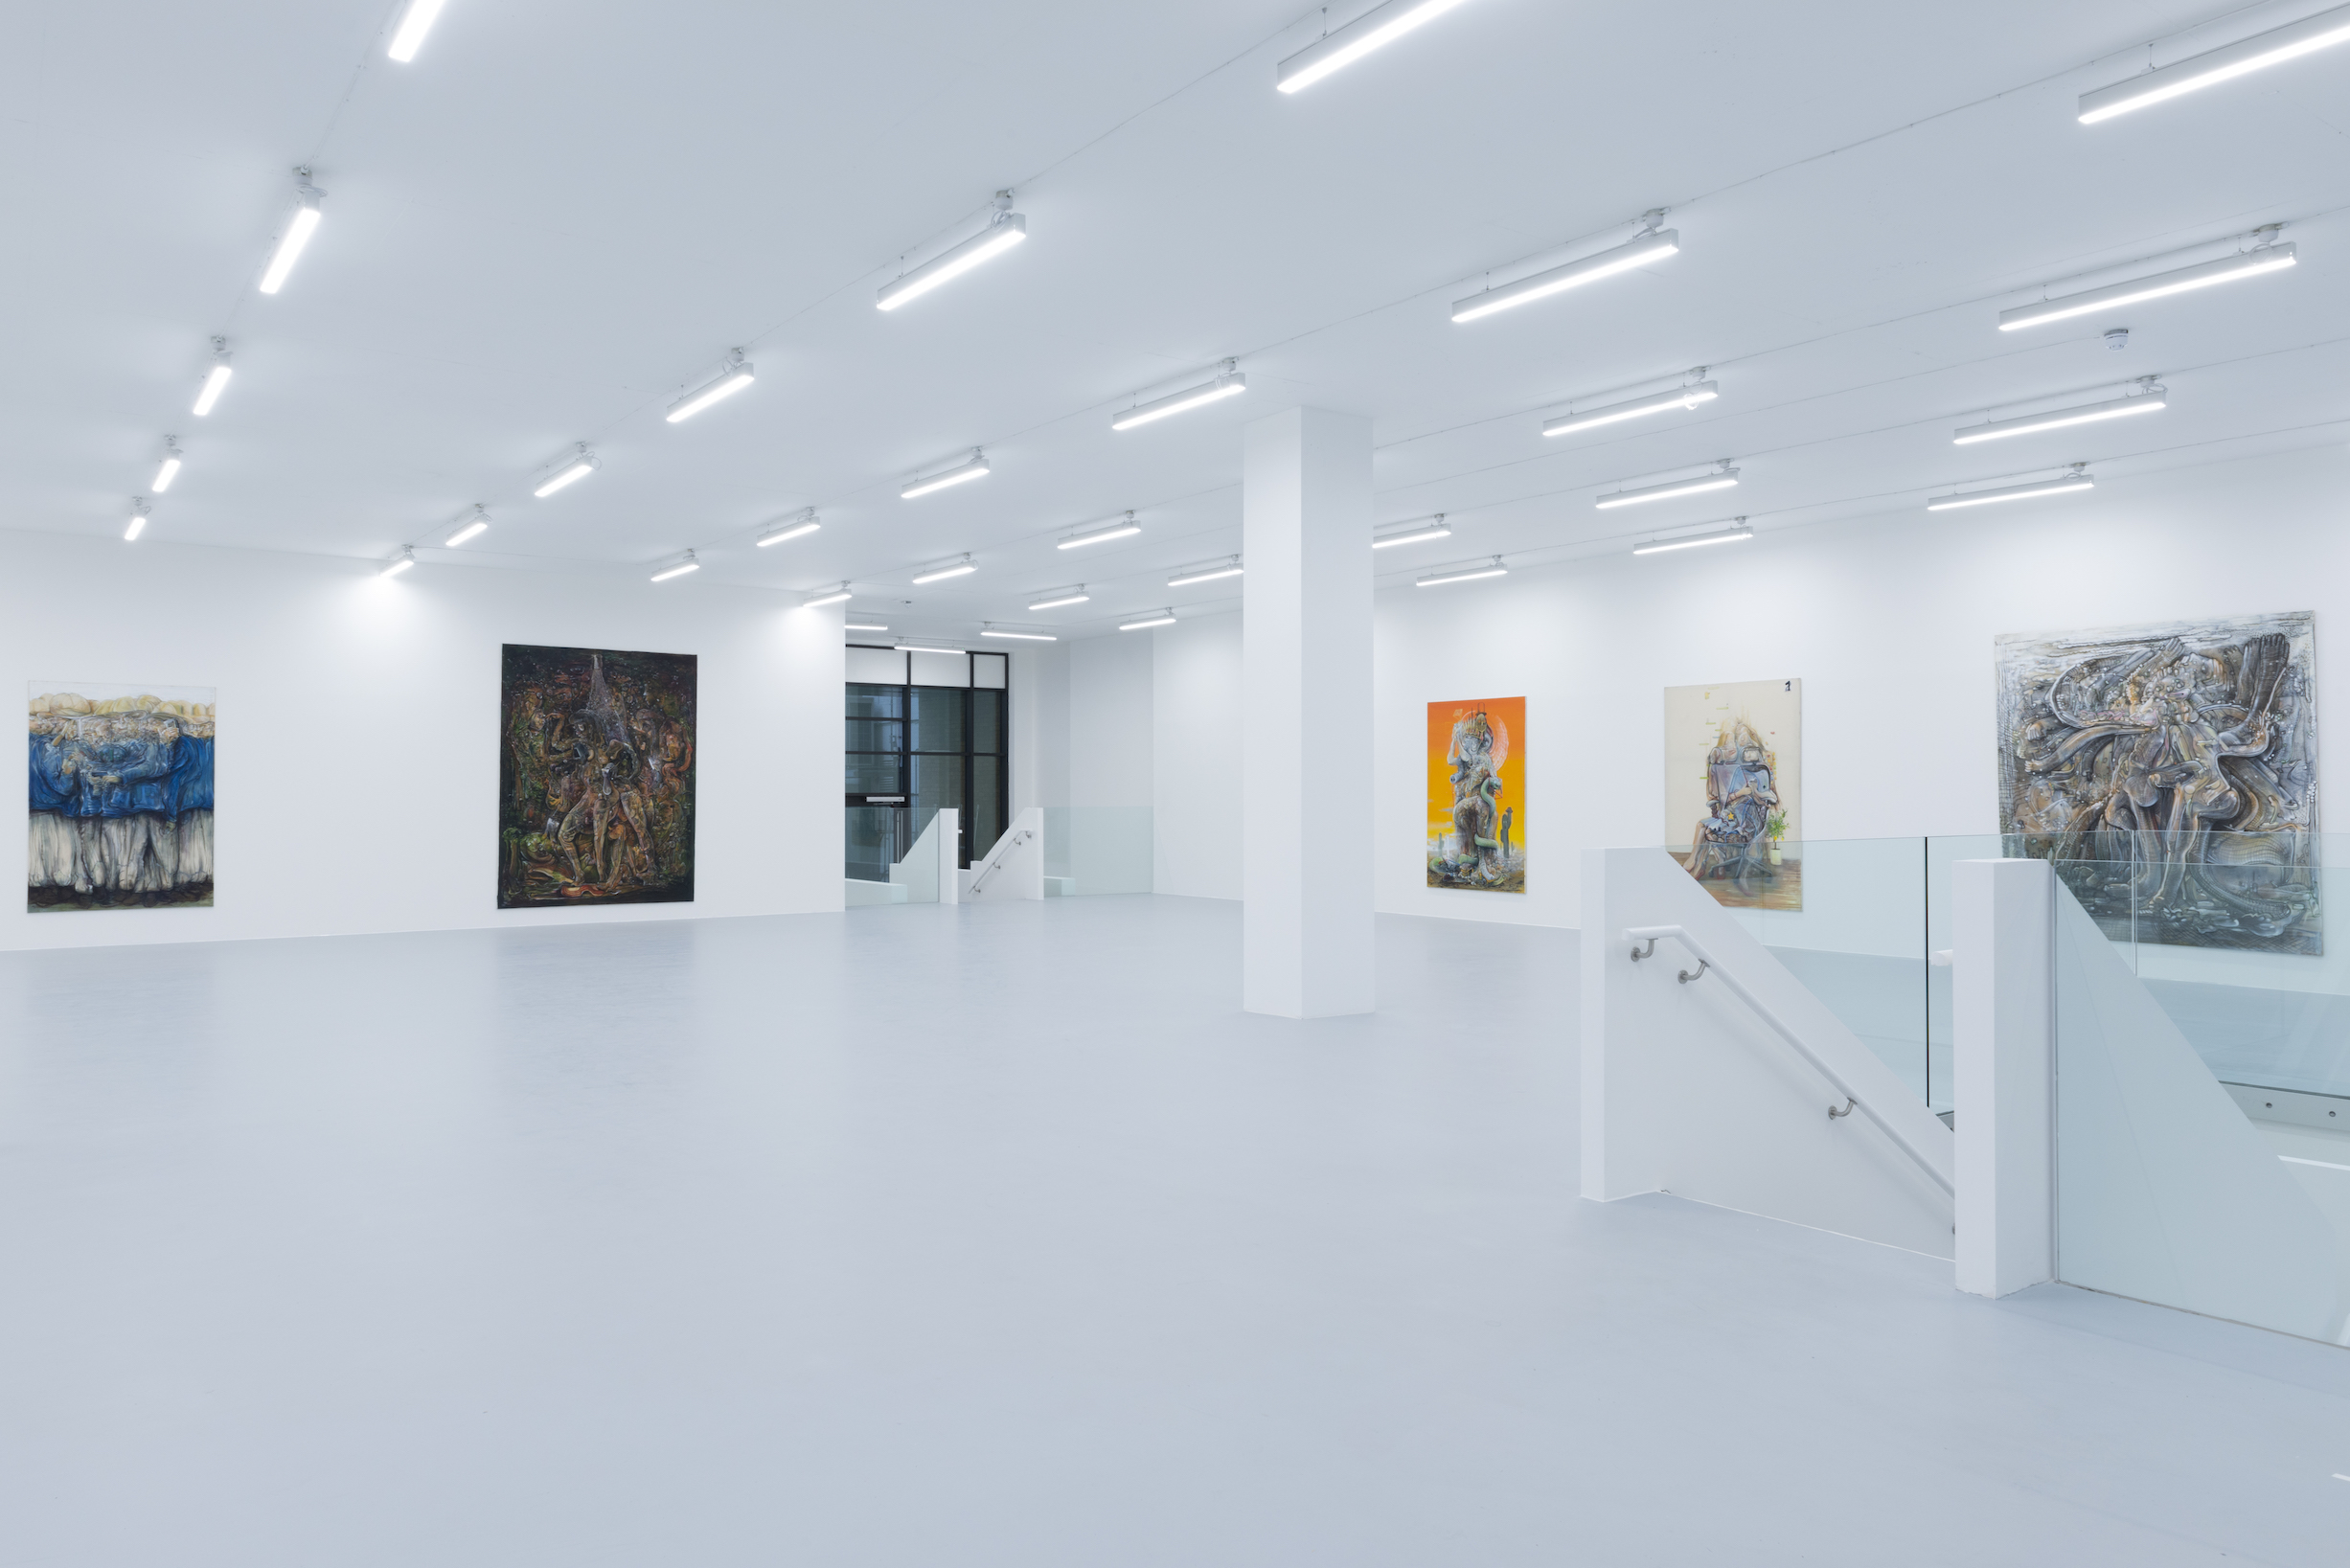 Installation view 5, Pascal Sender at Saatchi Yates, 2020, Courtesy of the artist and Saatchi Yates